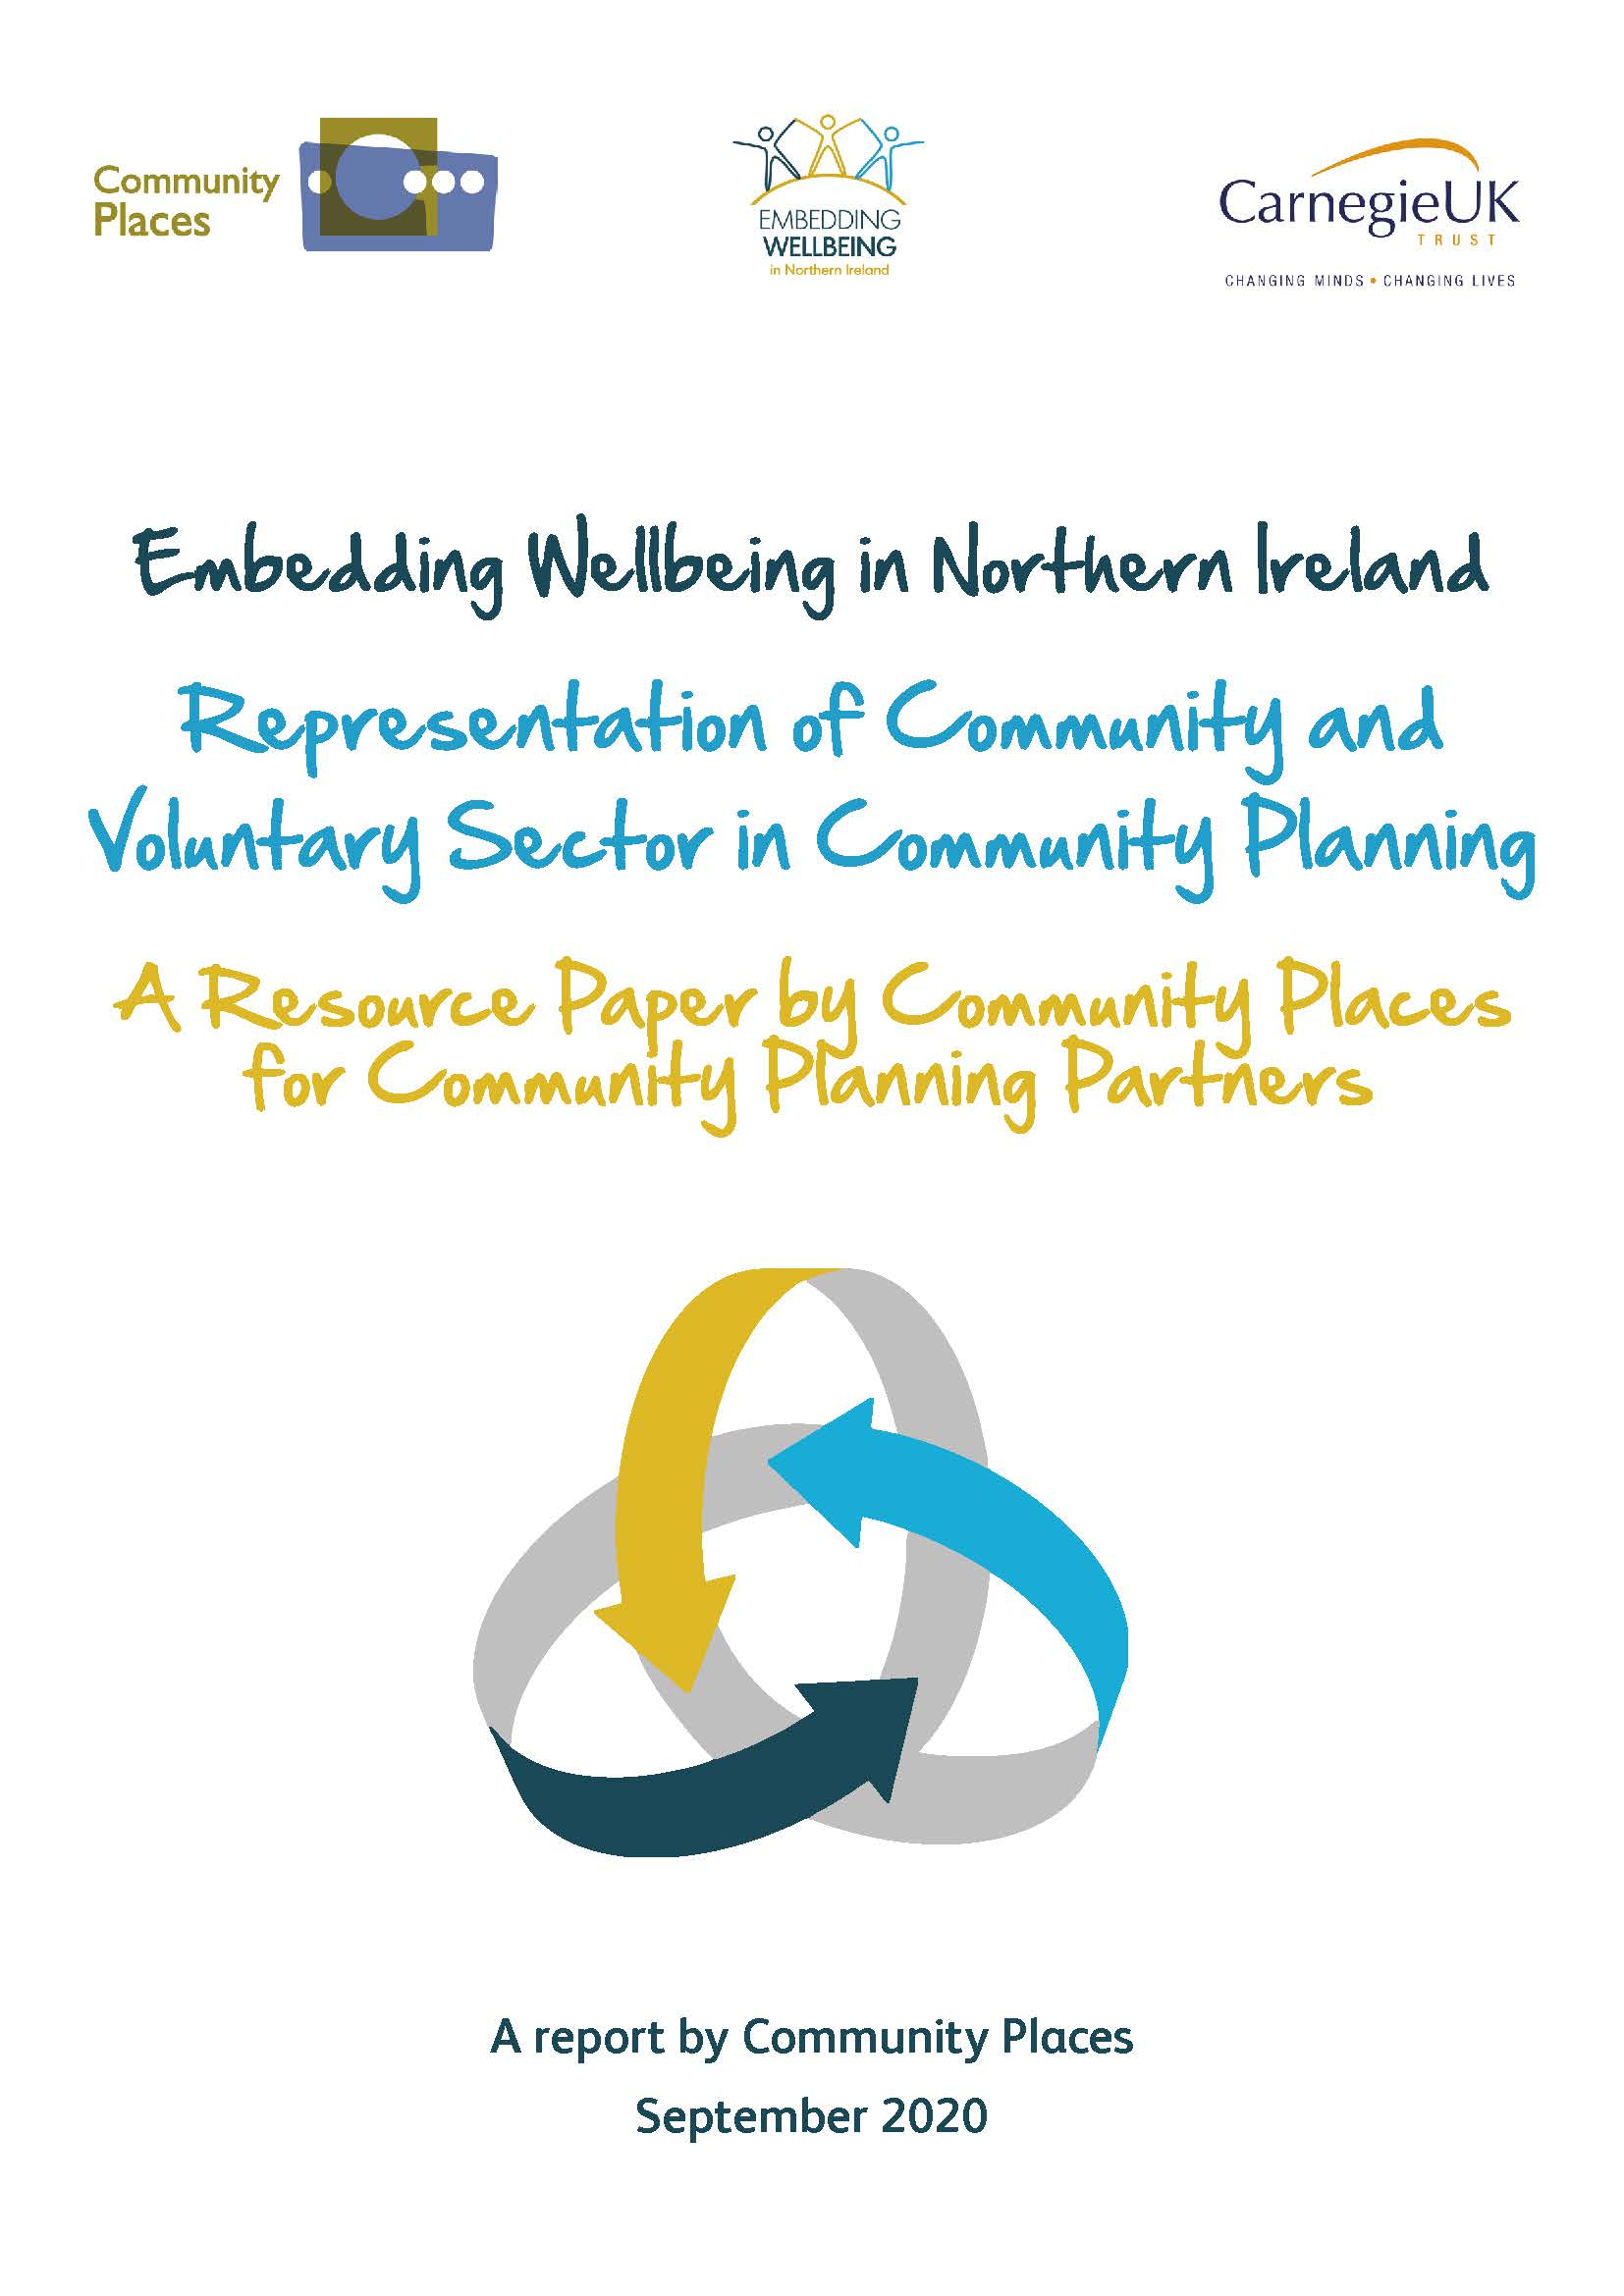 Representation of Community and Voluntary Sector in Community Planning